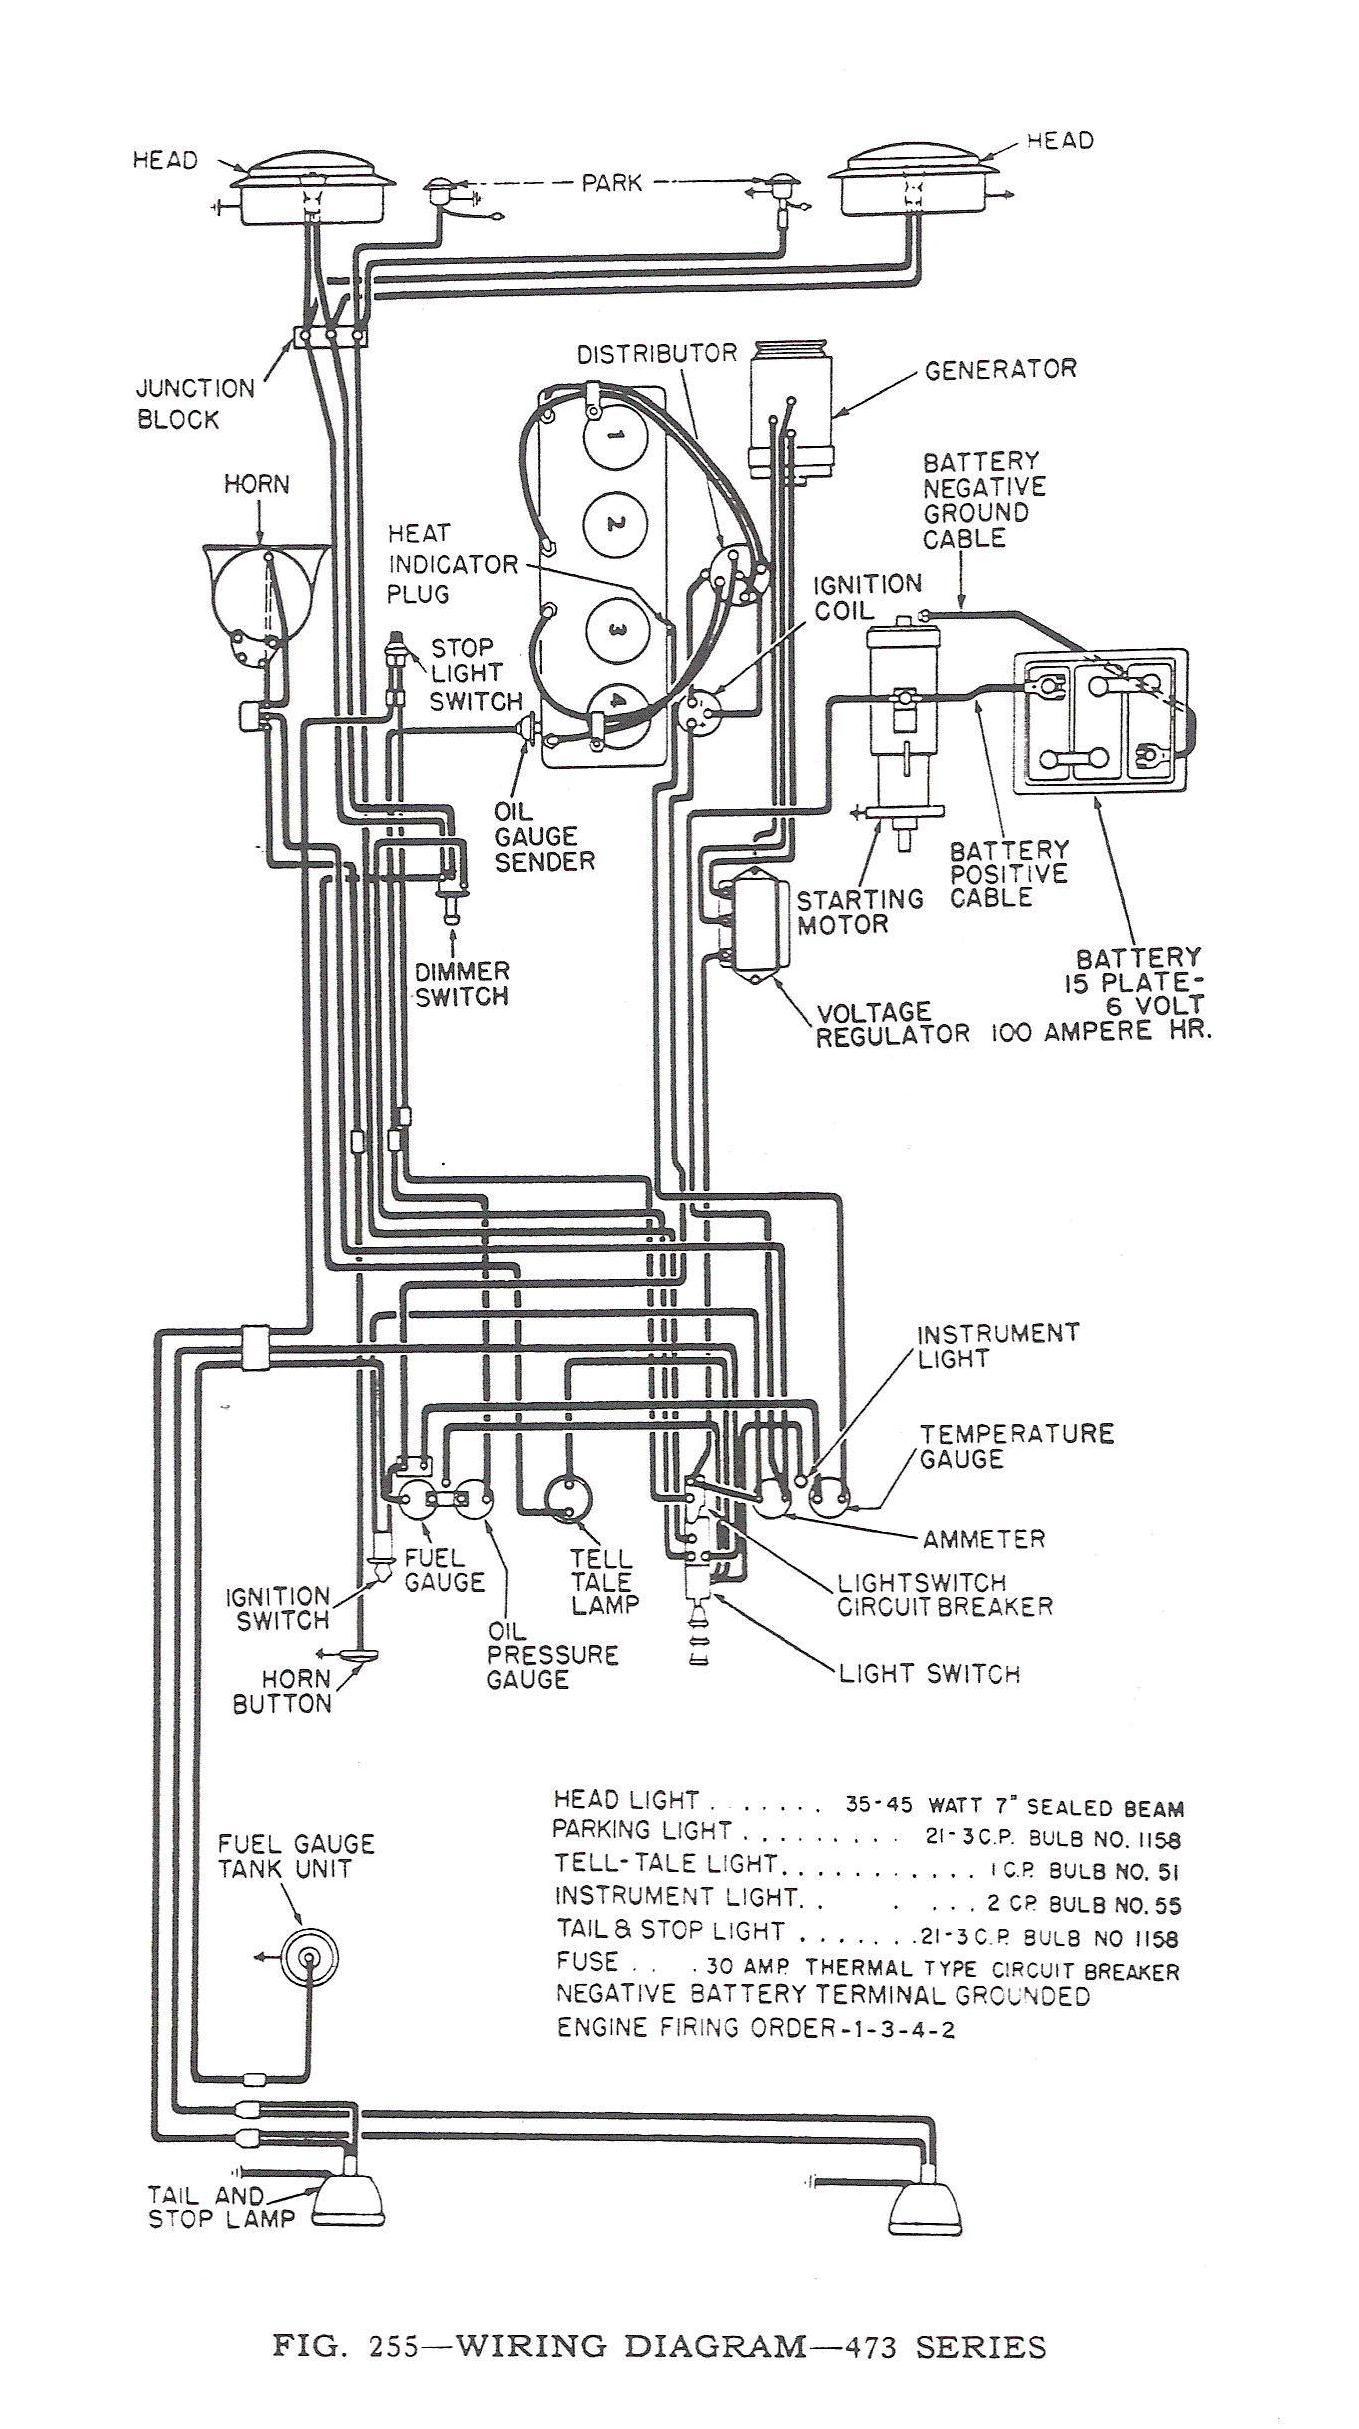 1945 willys jeep wiring diagram example electrical wiring diagram u2022 rh emilyalbert co willys mb jeep wiring diagram willys jeep cj2a wiring diagram